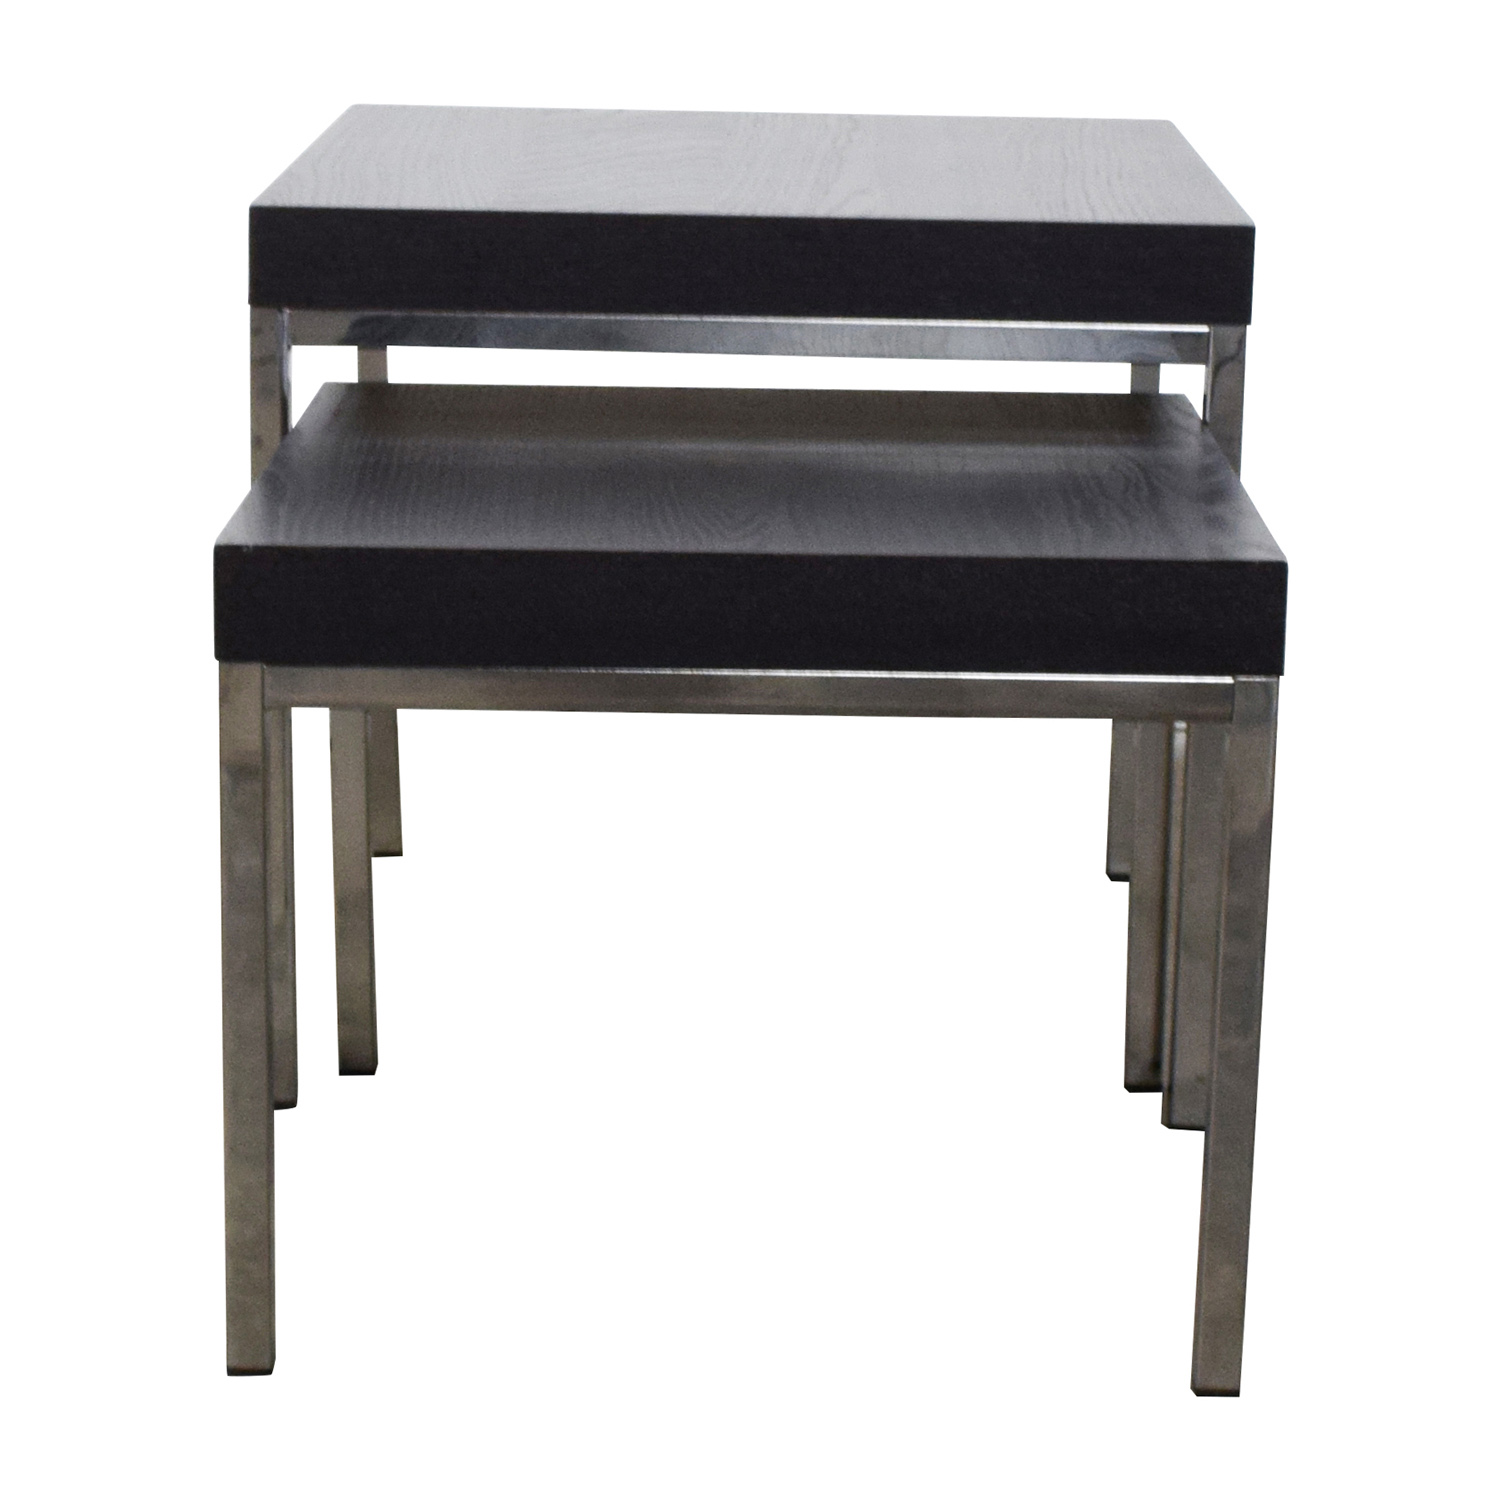 IKEA Klubbo Black and Chrome Nesting Tables / Tables